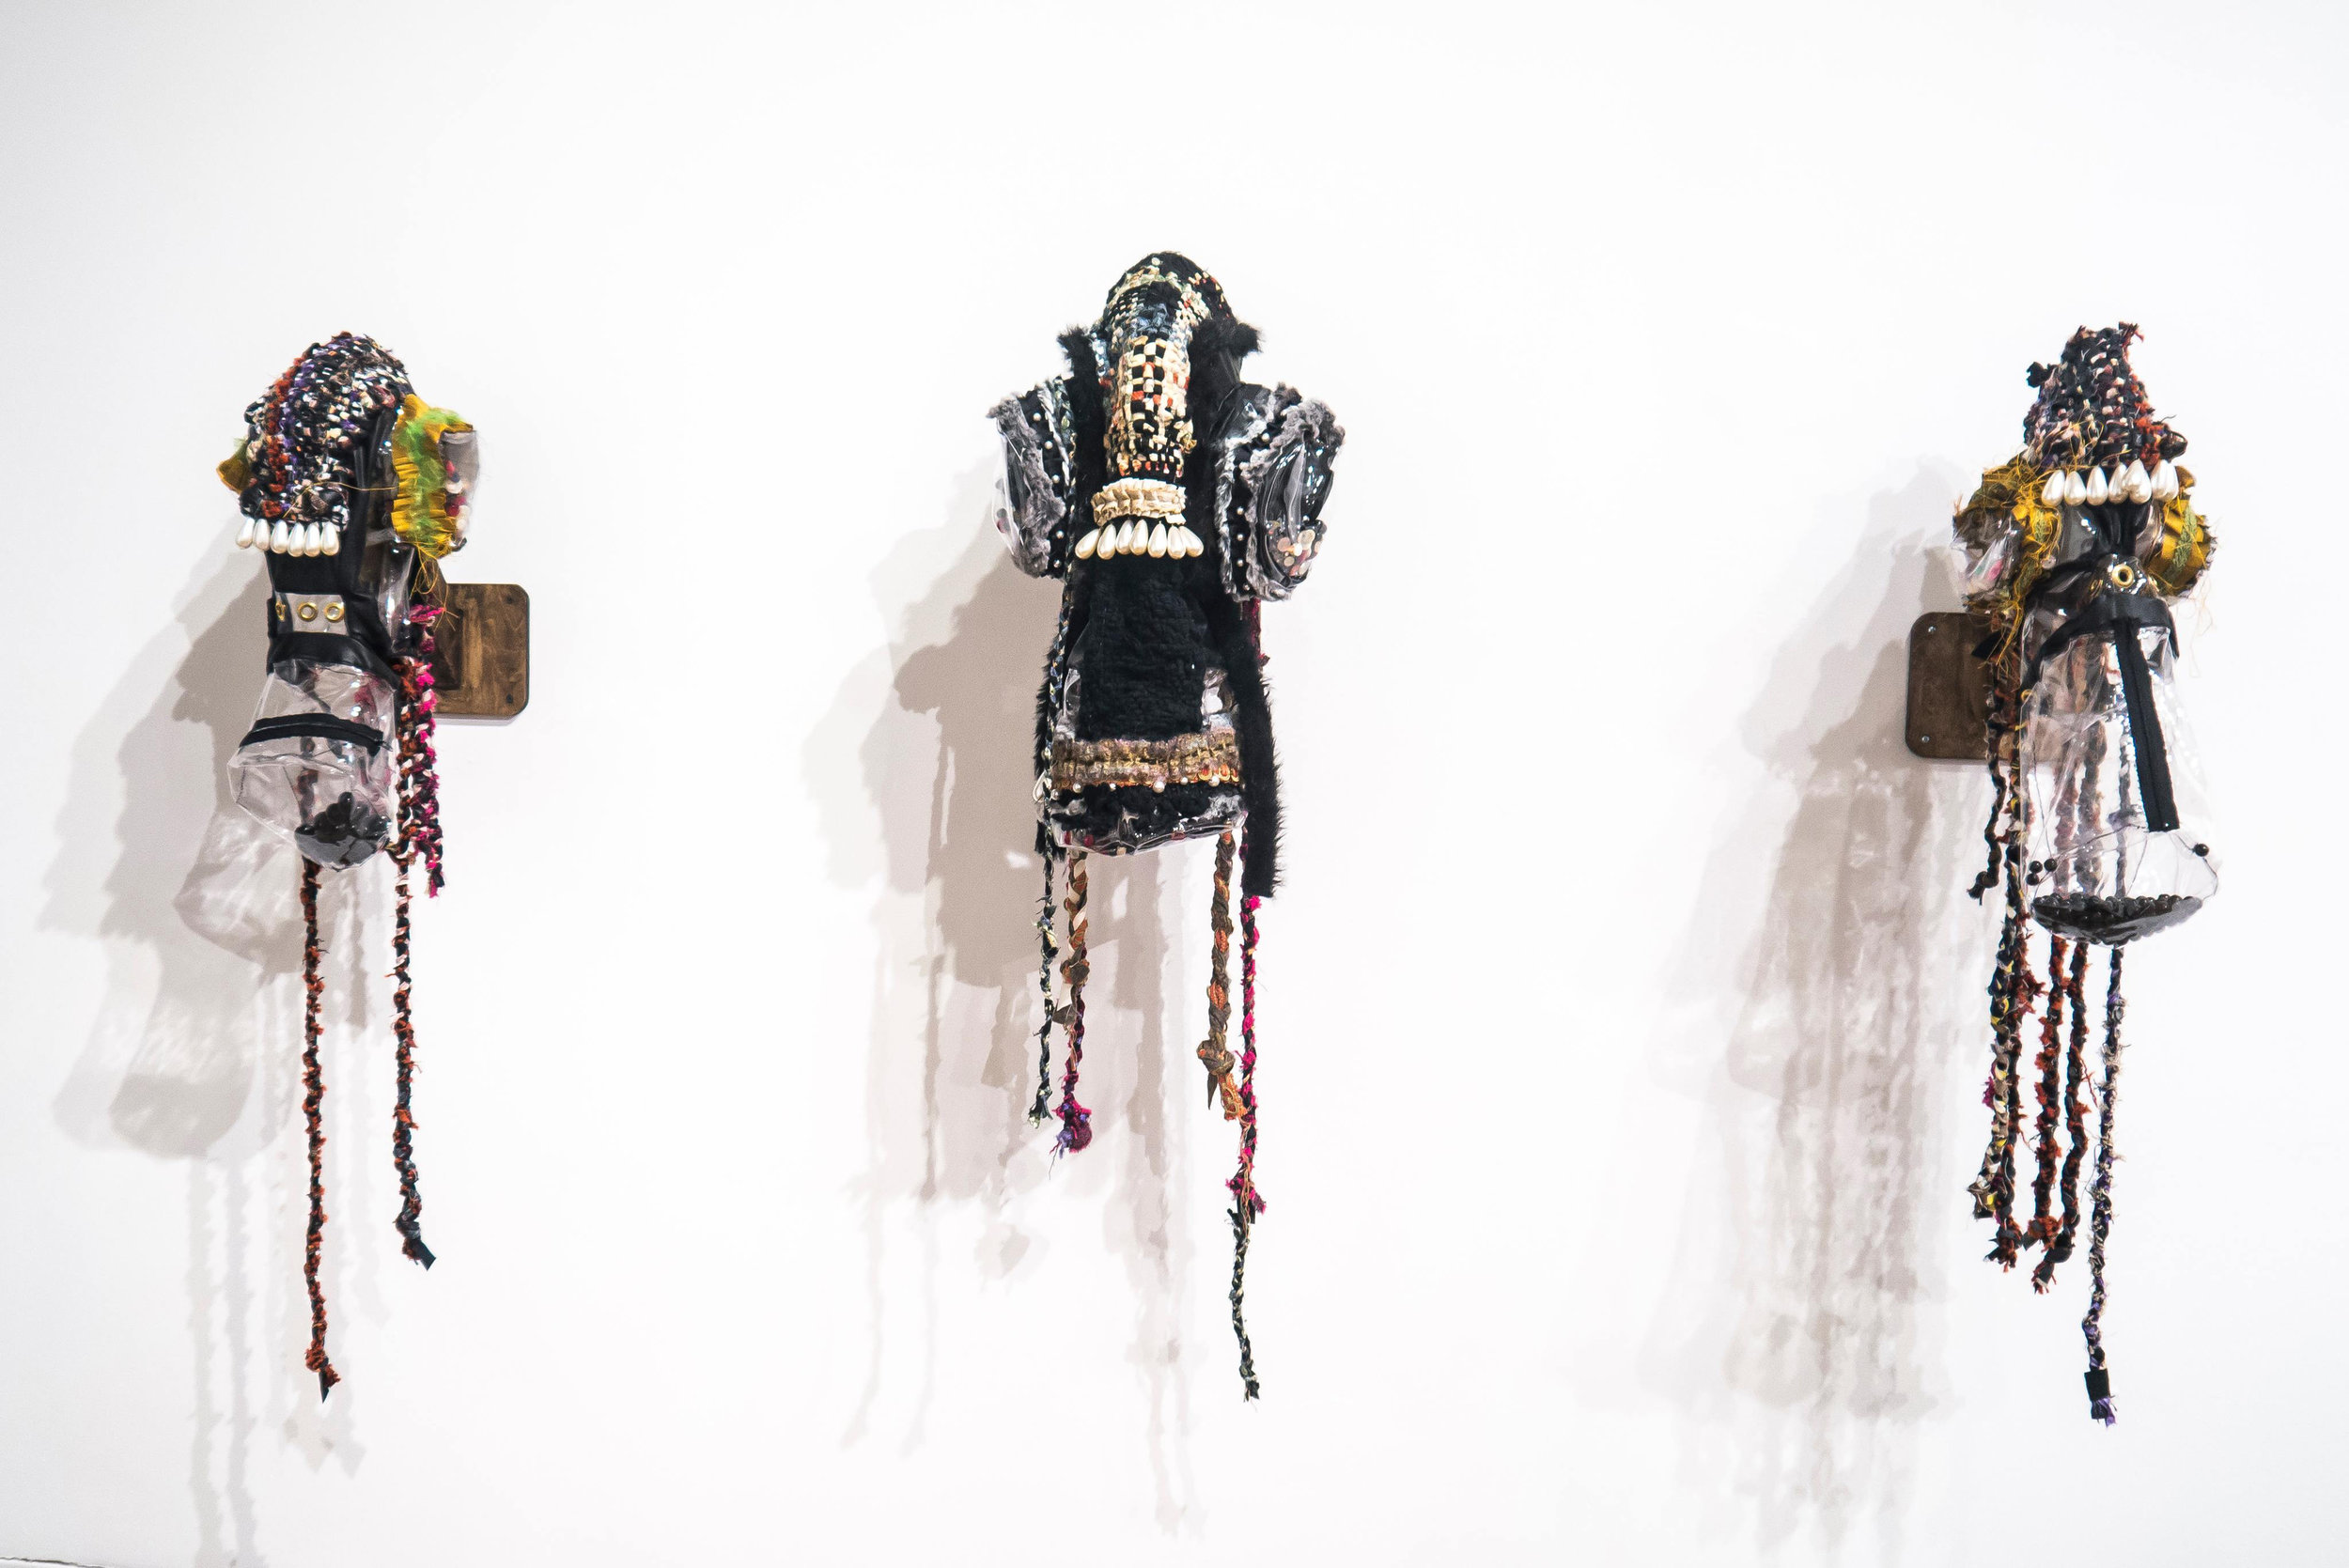 """PIPORNOT's Masks , Mixed media, Dimensions variable (one in the middle:20""""x8""""x6"""") , 2017-18   A part of the installation """"PIPORNOT's Superorganism."""""""